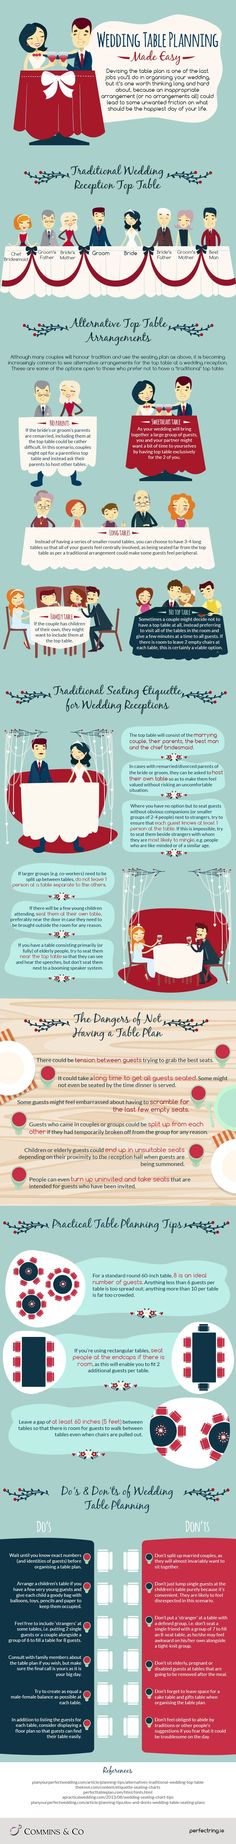 This cool infographic answers every question you have about planning your wedding table seating arrangements.